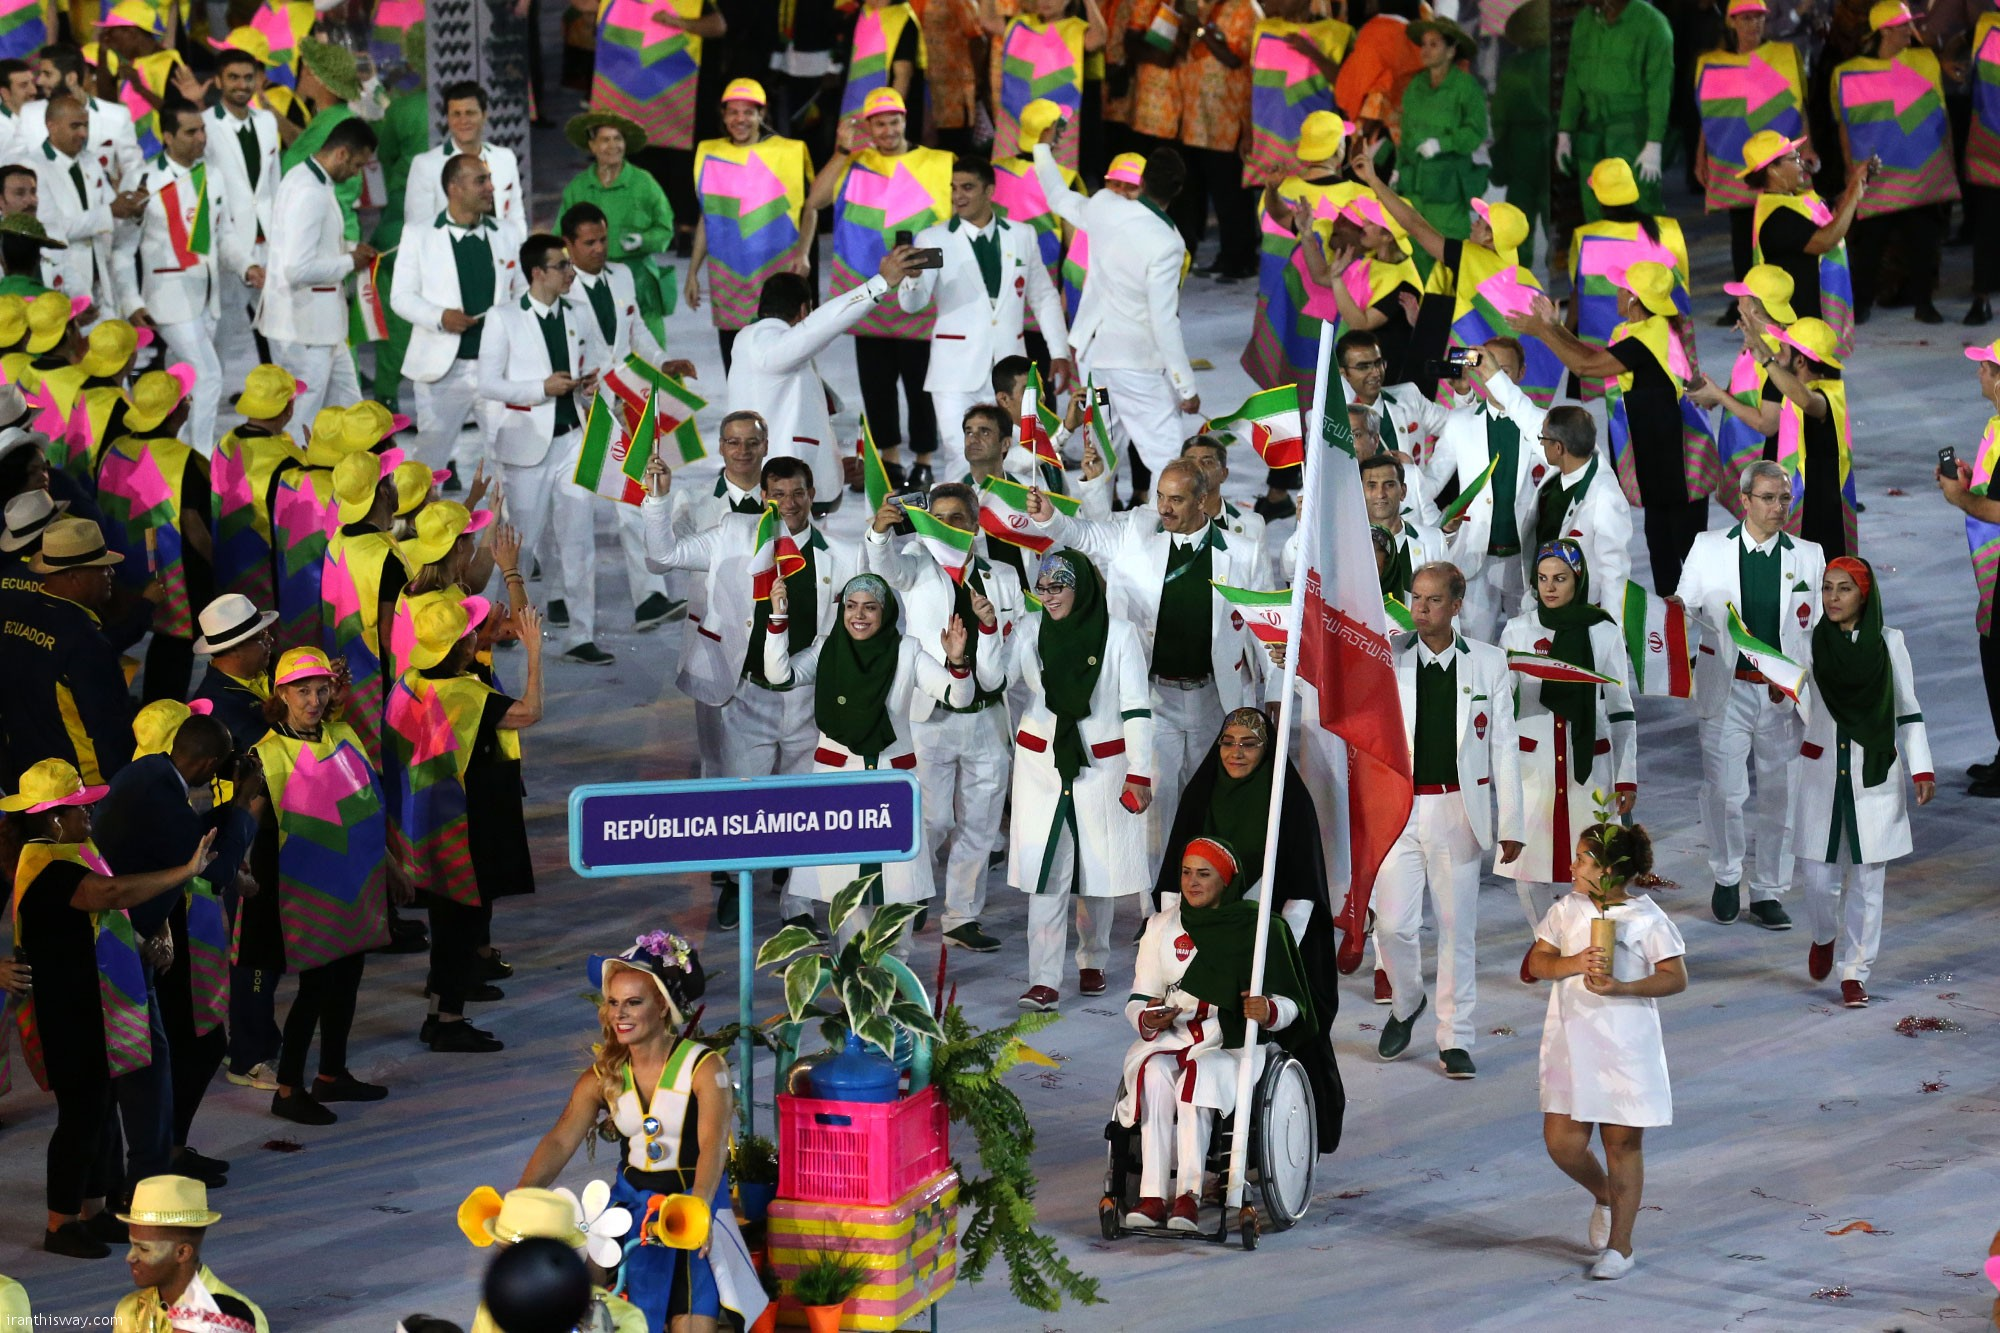 Flag bearer archer leads Iran into Rio Olympics